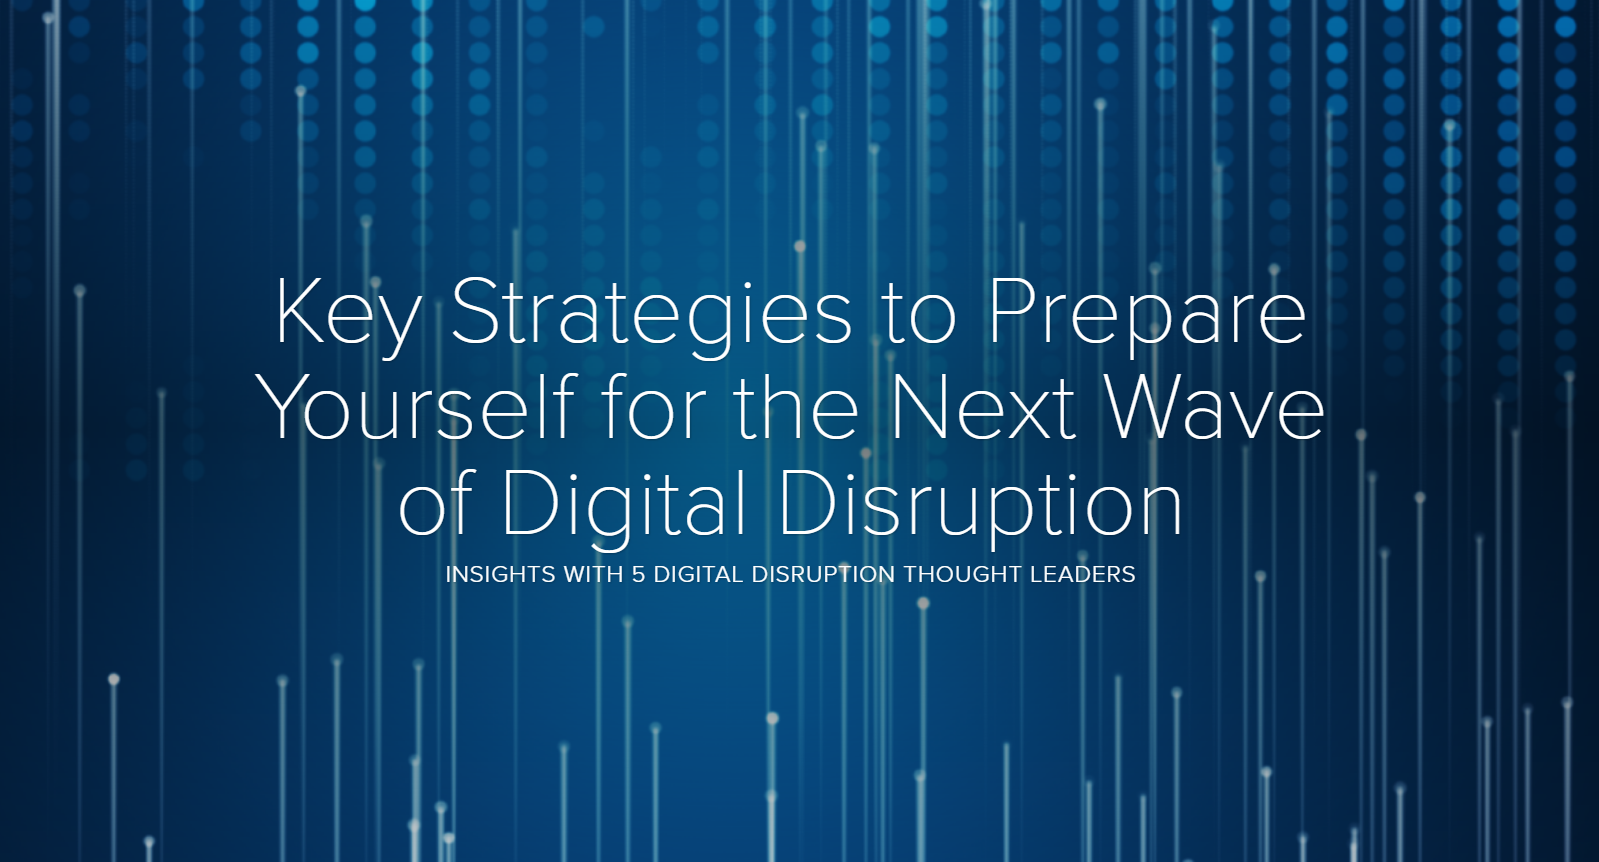 Key Strategies to Prepare Yourself for the Next Wave of Digital Disruption